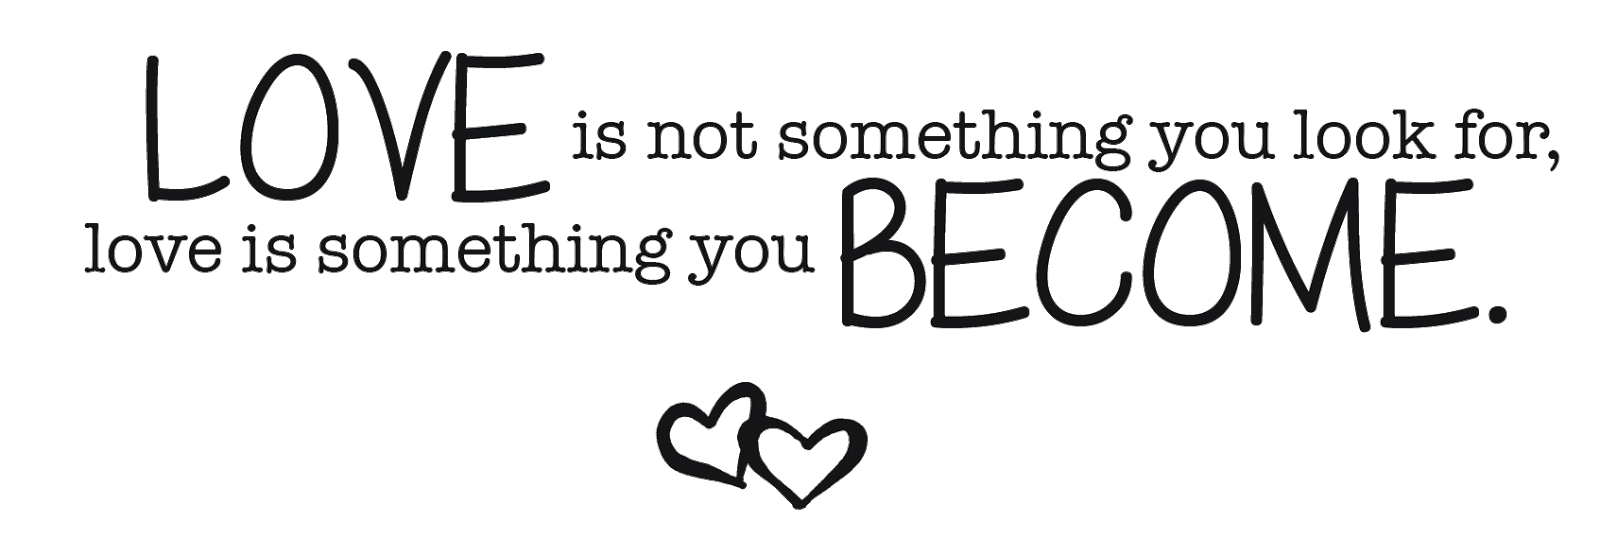 Photo Editor With Love Quotes New Big Quotes Png For Editing  Editing Png World   Editing Tool